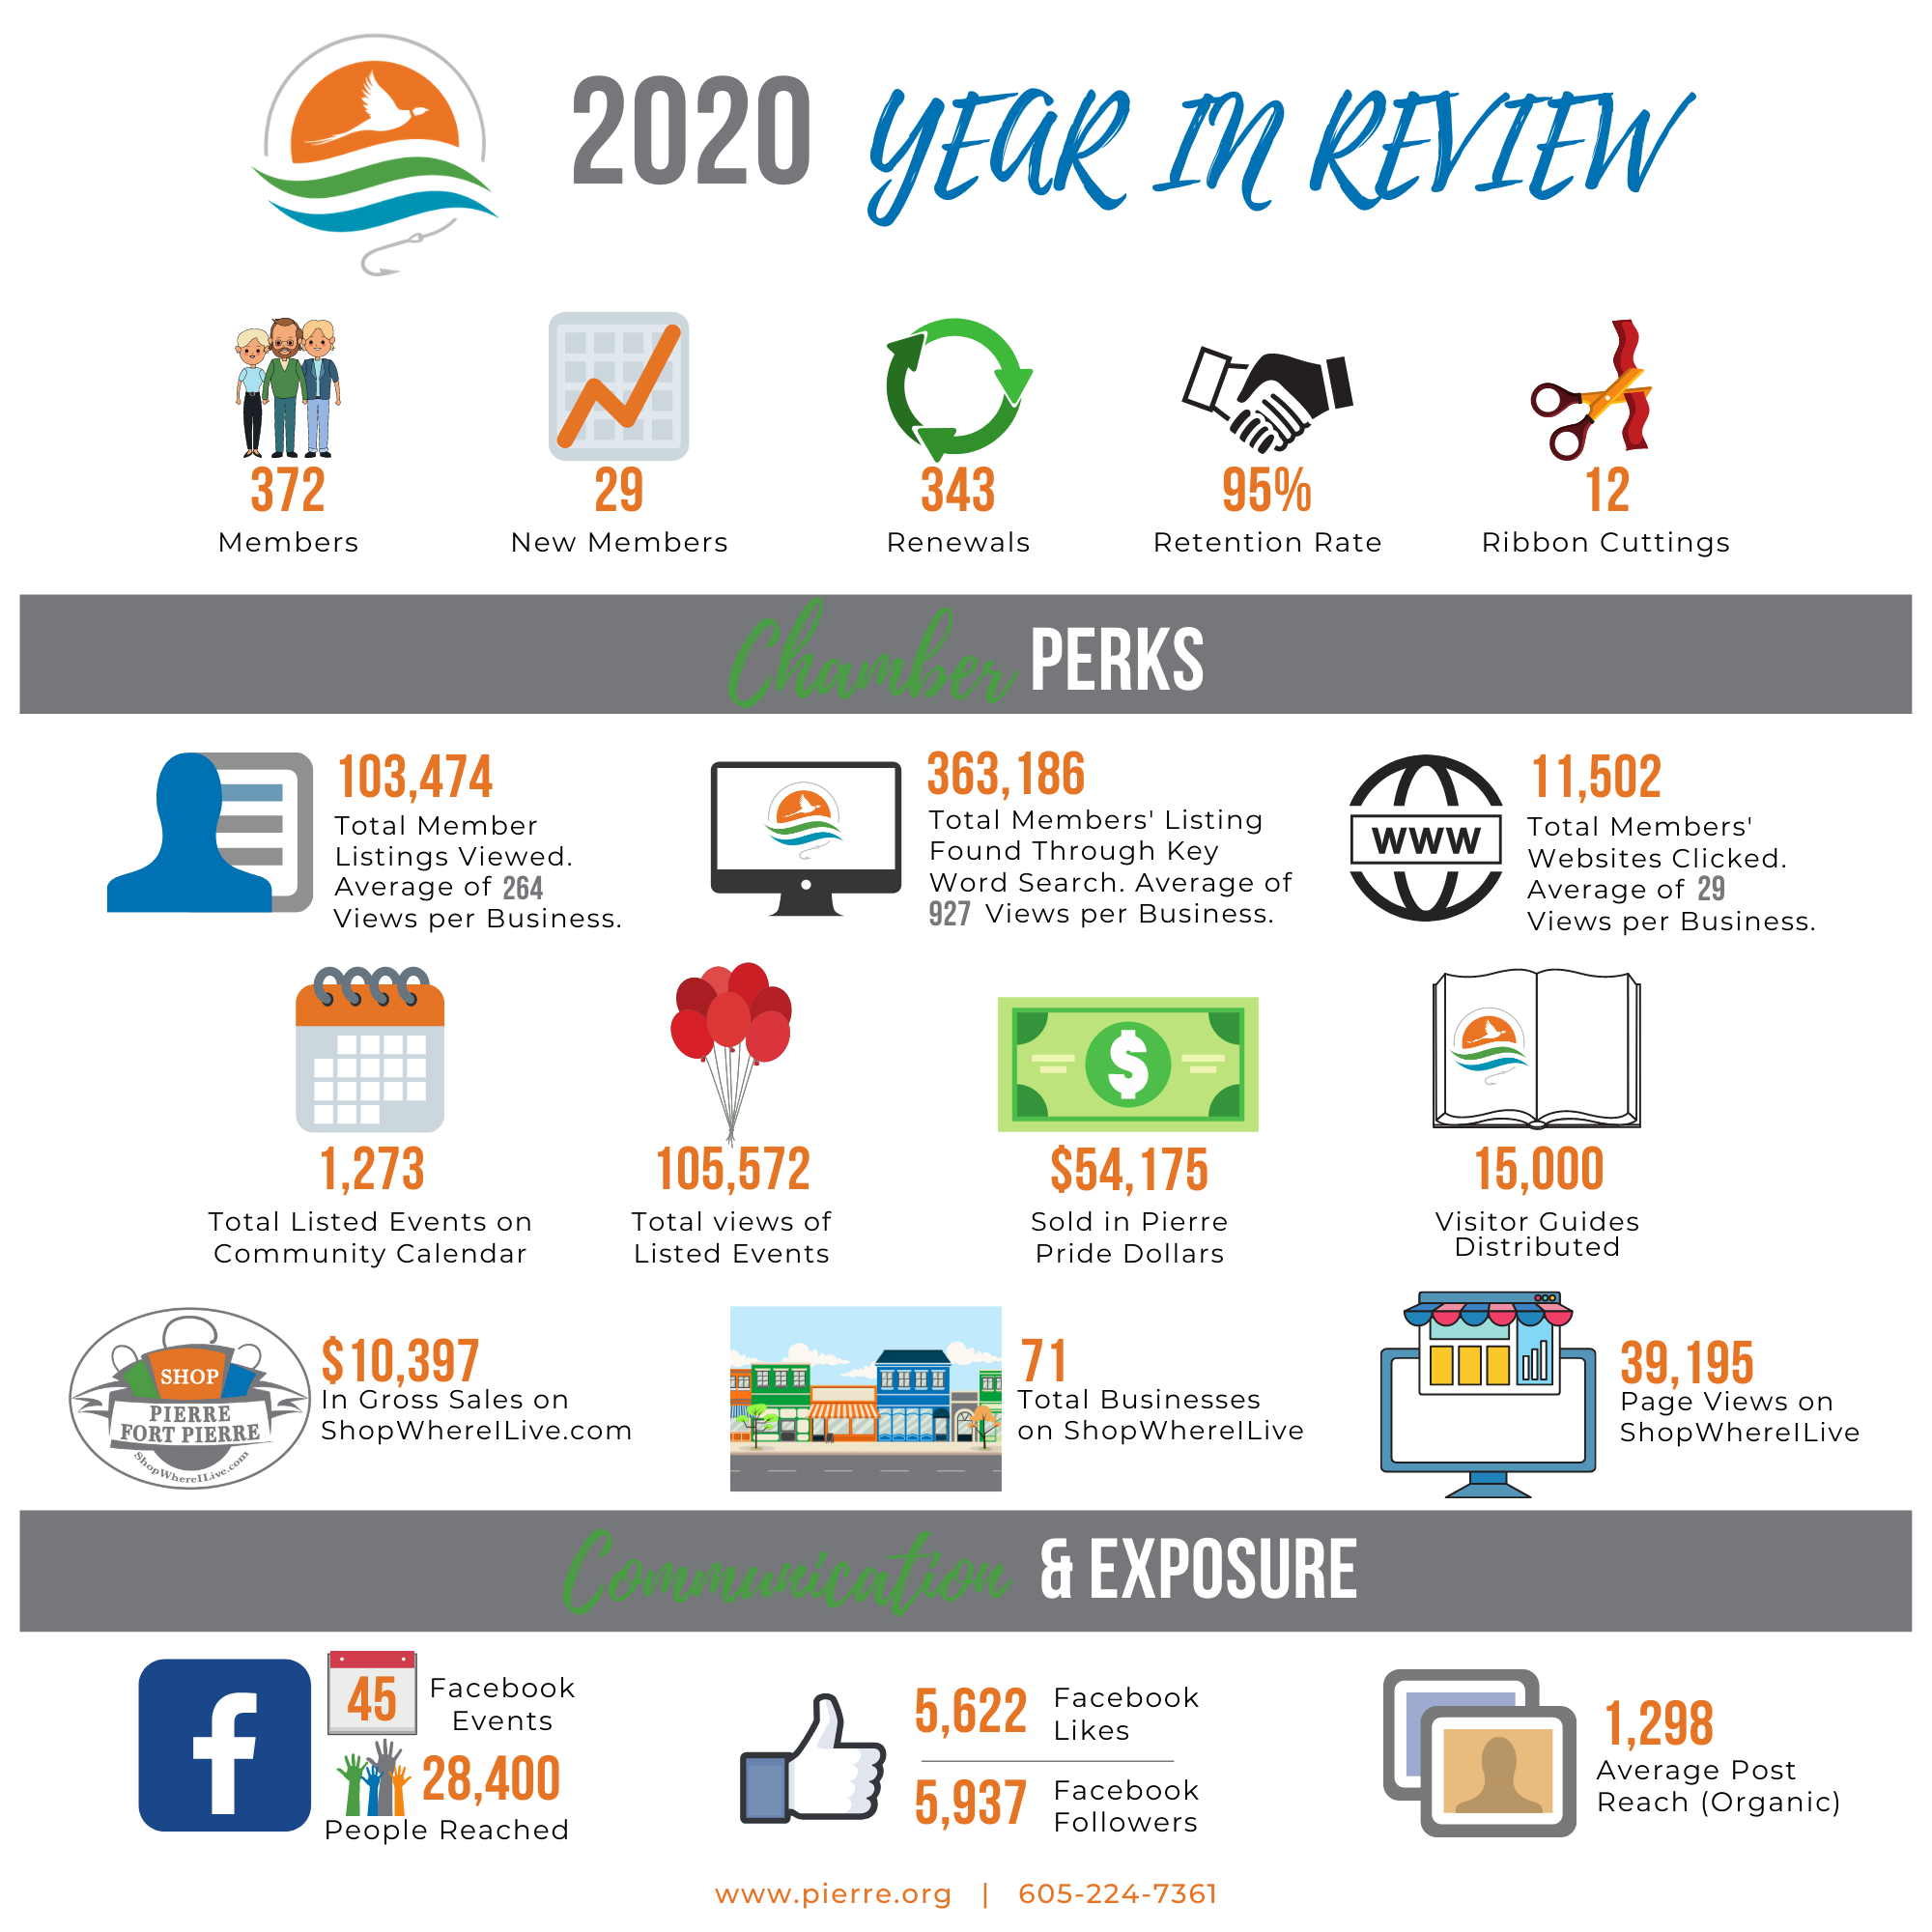 January 2021 Year in Review Infographic